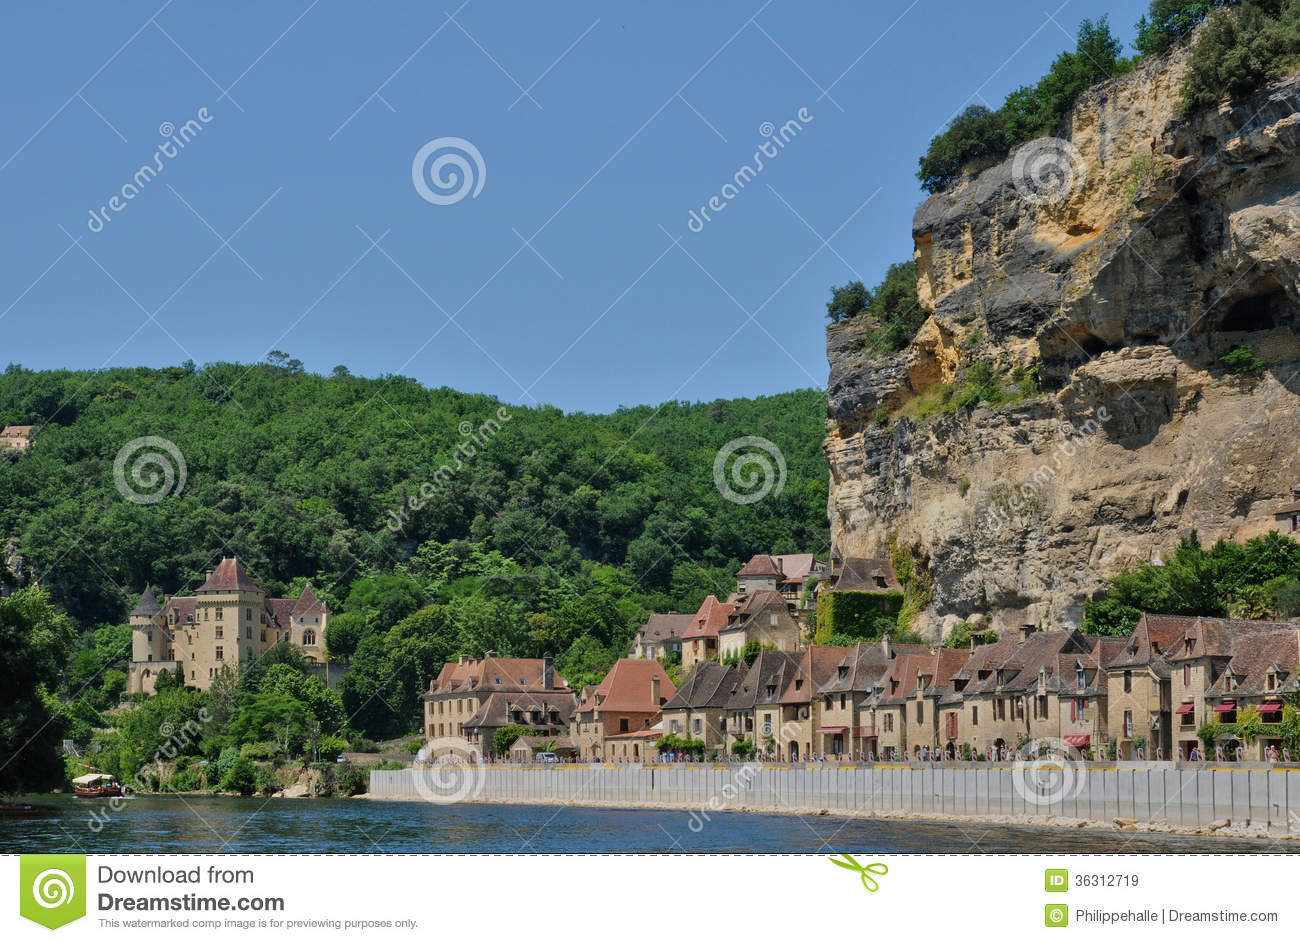 France the picturesque village of la roque gageac and dordogne river